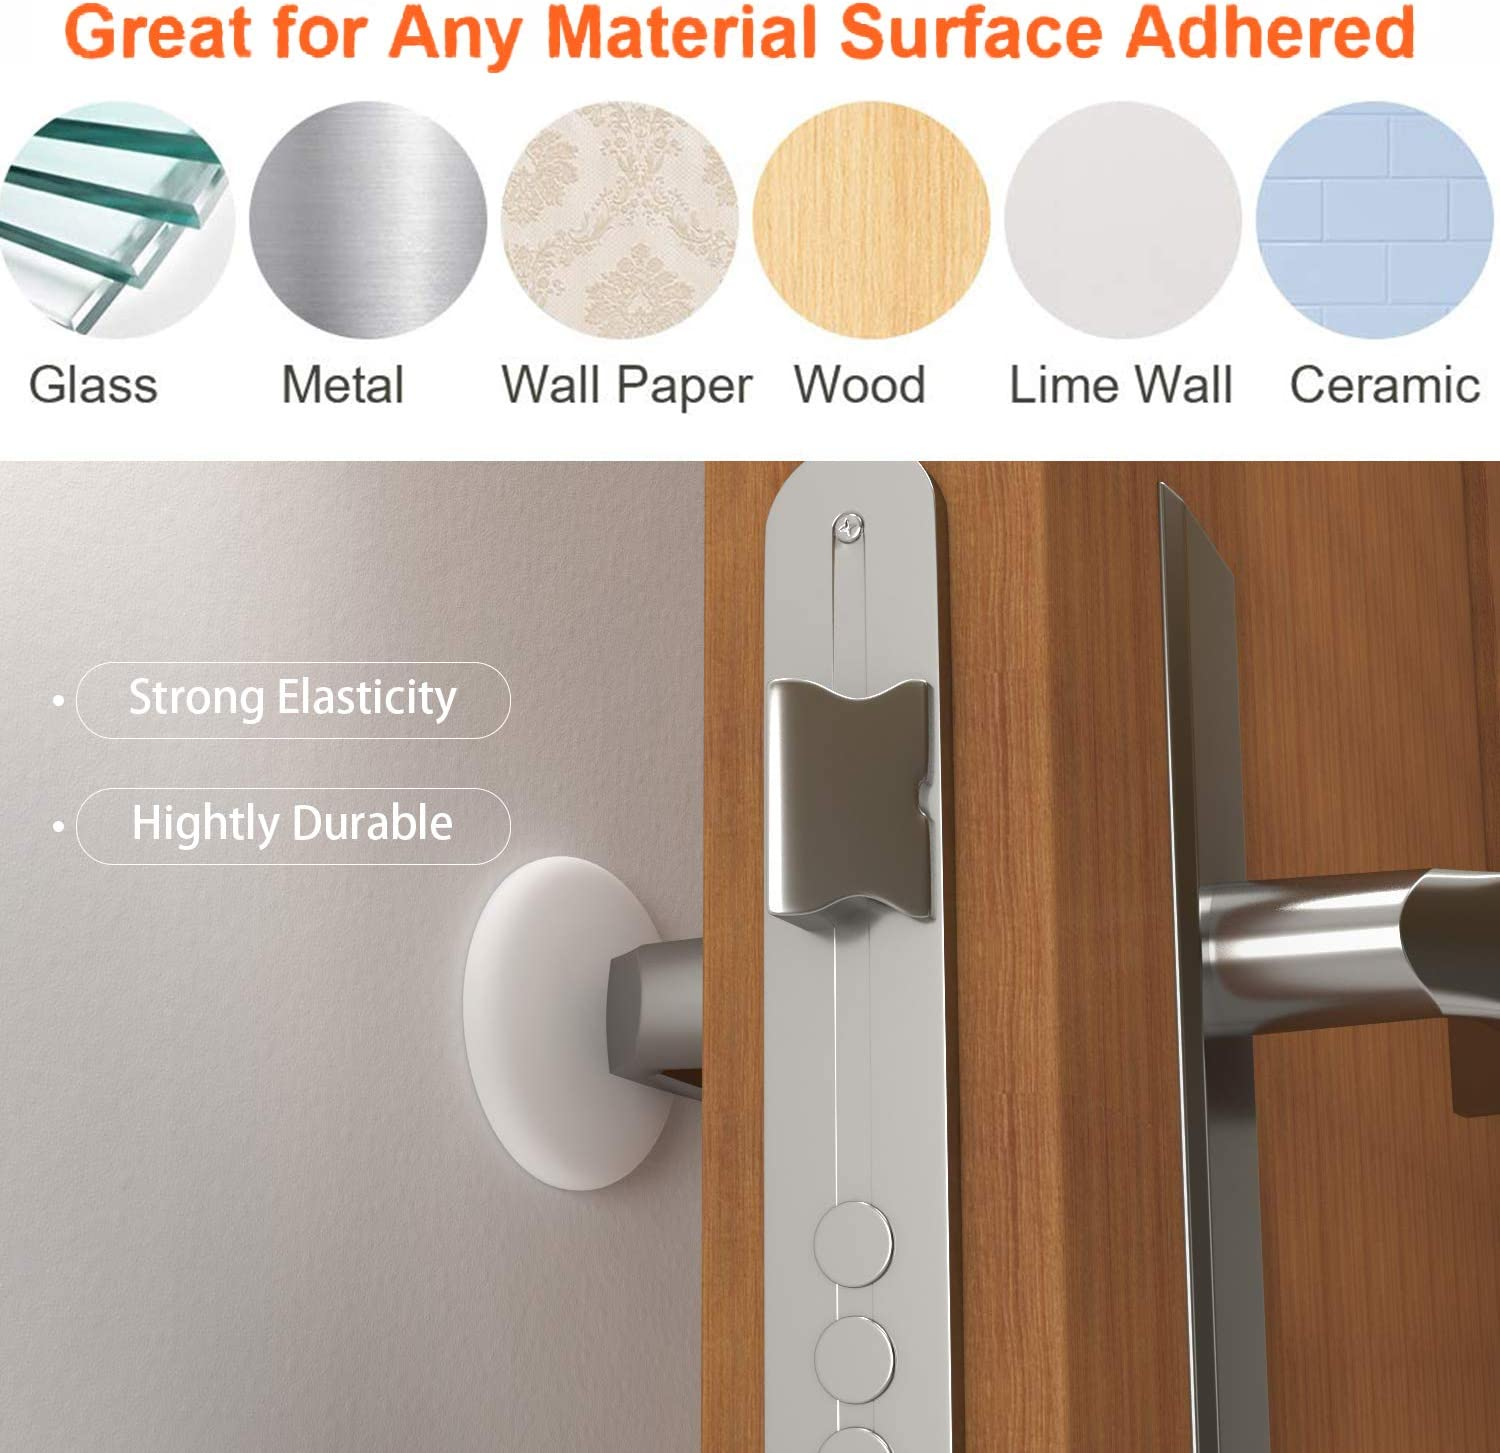 12 Pcs White Rubber Pads Sound Insulation and Shock Absorption Self Adhesive Protector Guard Your Wall Against Damage from Your Door Handle Door Stopper Wall Protector